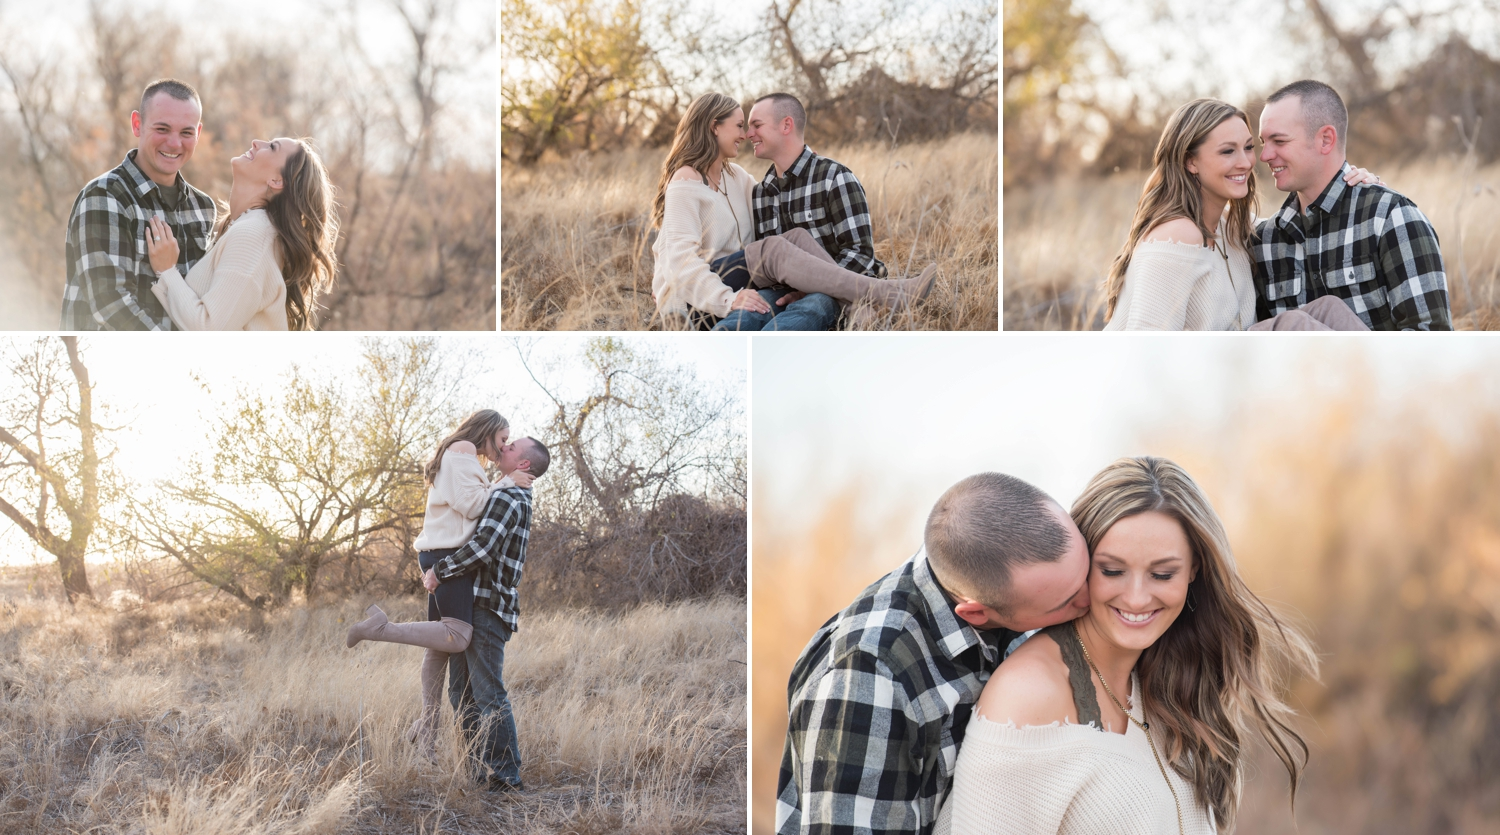 winter engagment photography garden city ks 3.jpg